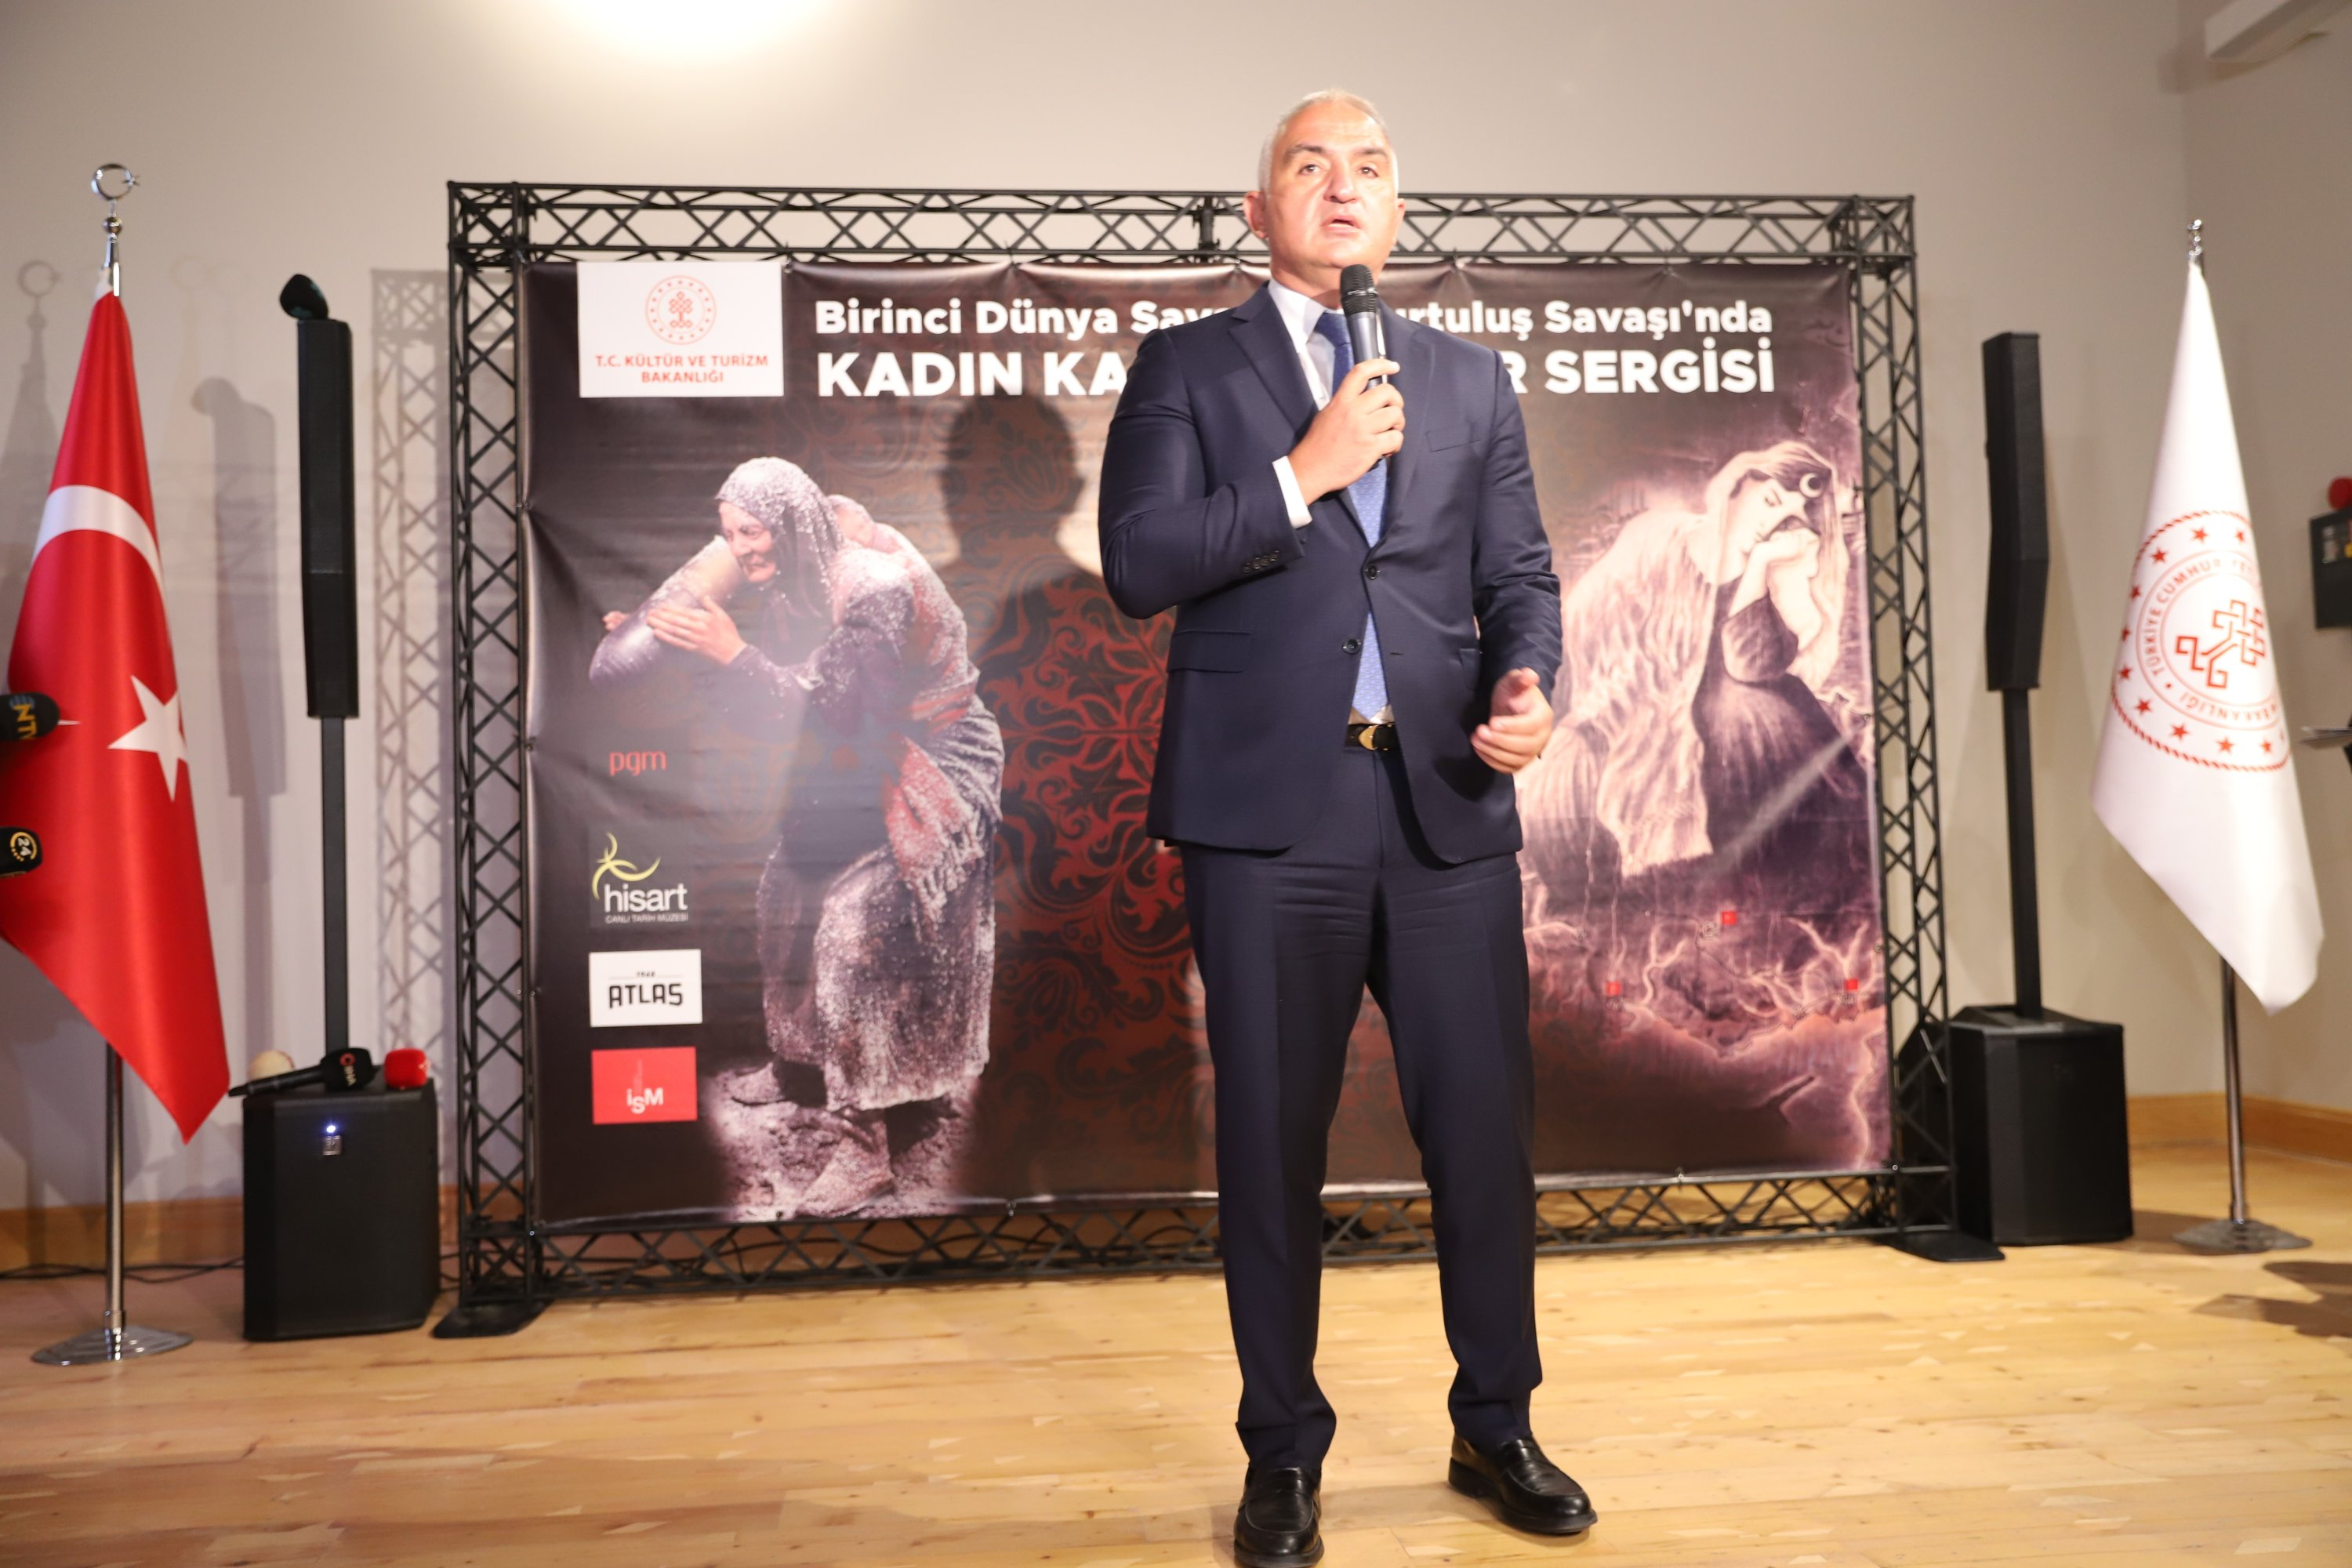 Minister of Culture and Tourism Mehmet Nuri Ersoy speaks at the opening ceremony in the Istanbul Cinema Museum, Sept. 3, 2021. (Photo by Meltem Sarsılmaz)